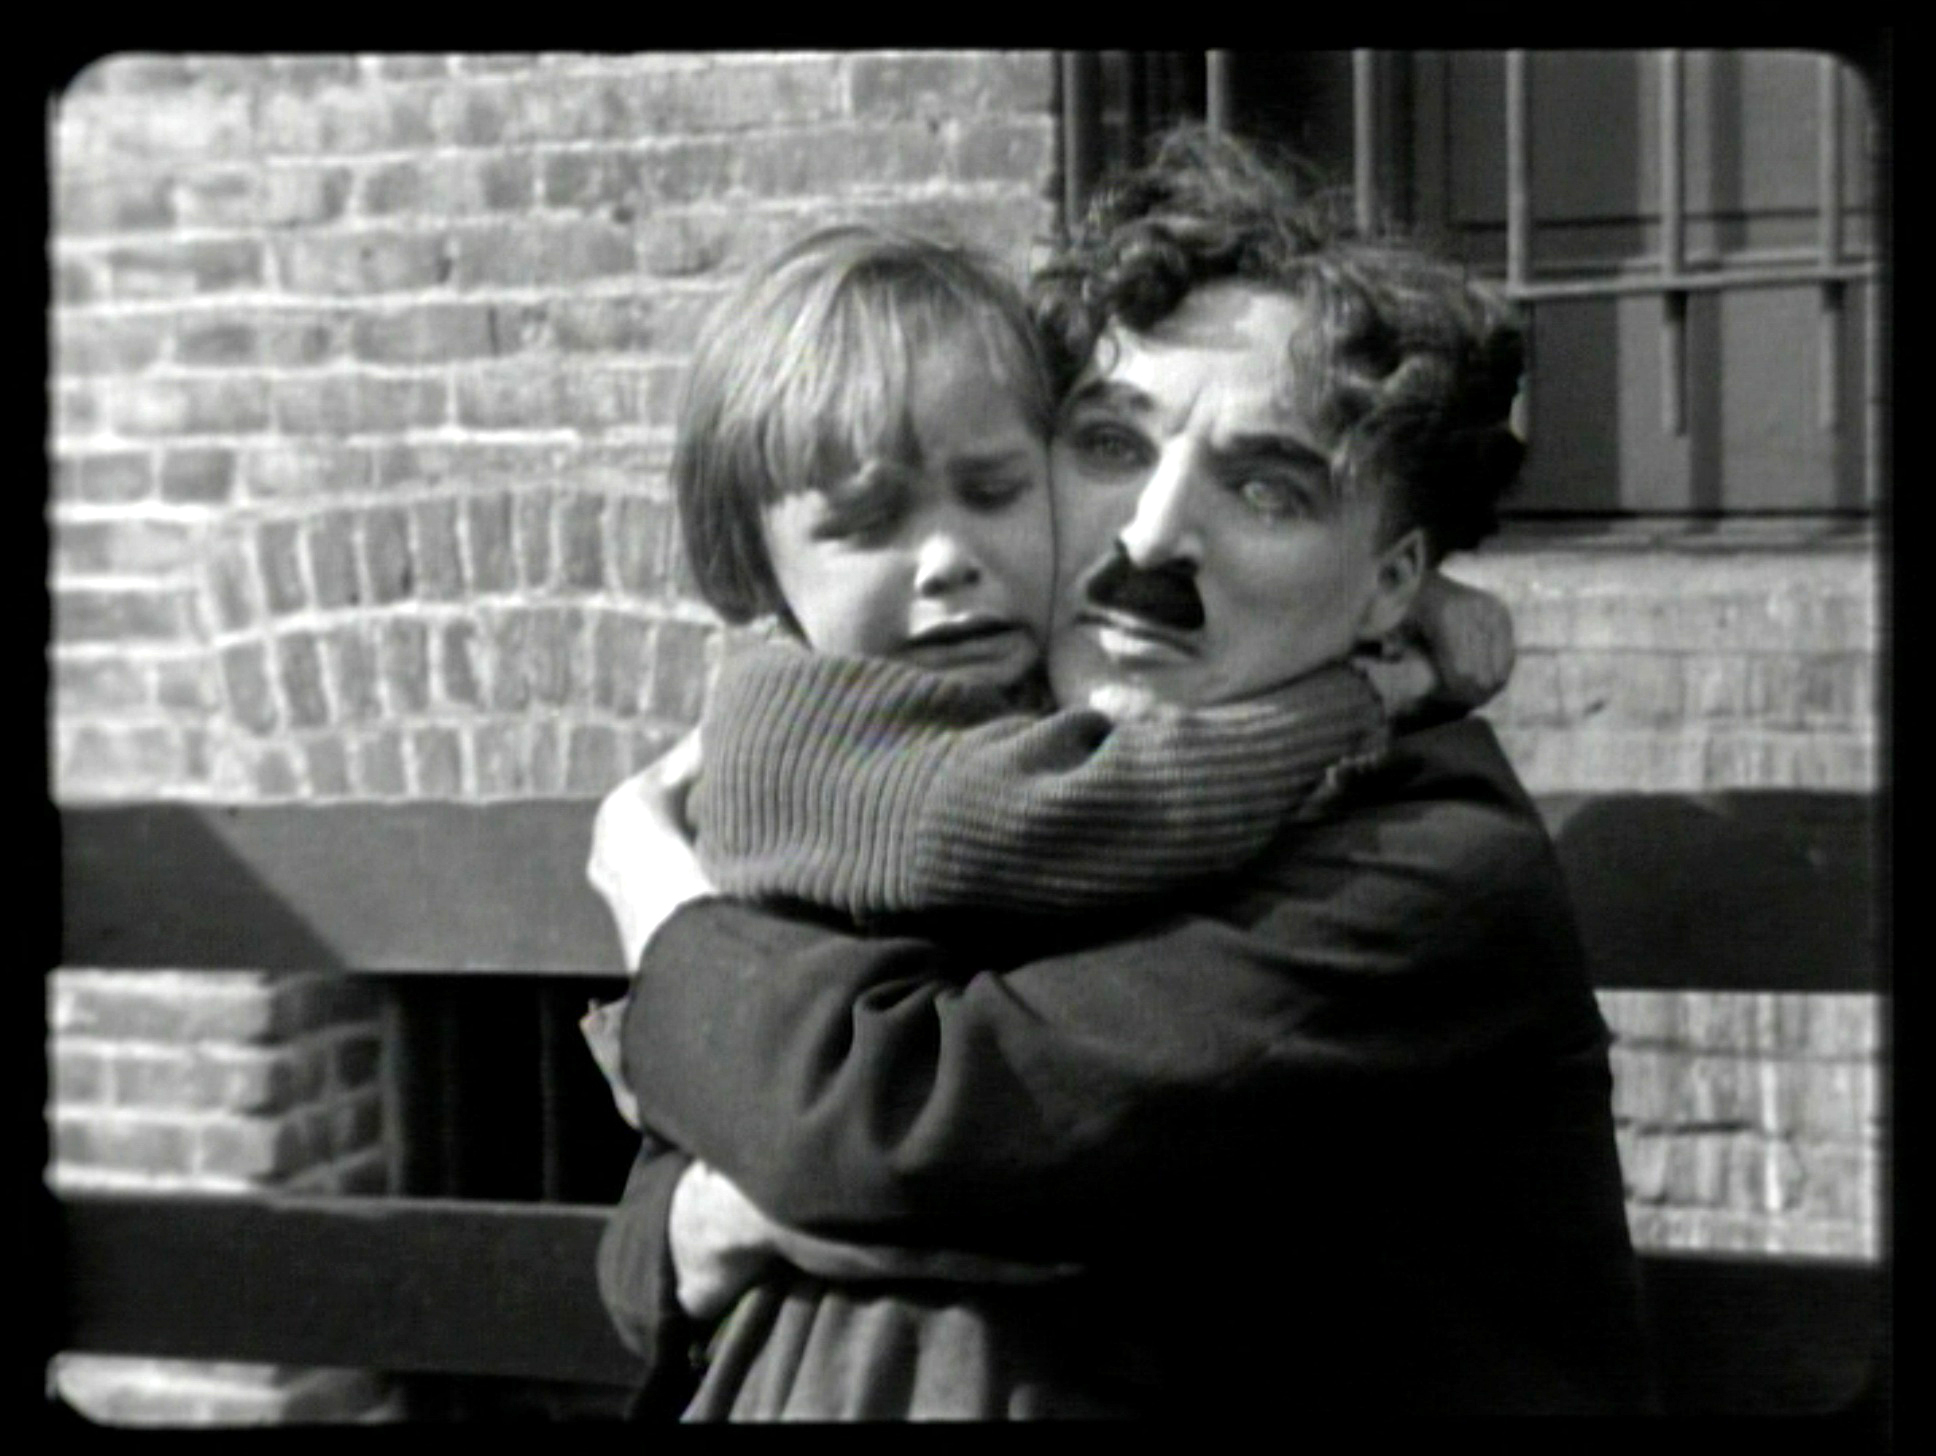 a review of the kid by charlie chaplin Parents need to know that the kid is charlie chaplin's first feature-length release, a silent picture from 1921 the film chronicles another episode in the life of his famous character, the tramp, who this time finds an abandoned baby and decides to raise it as his own.